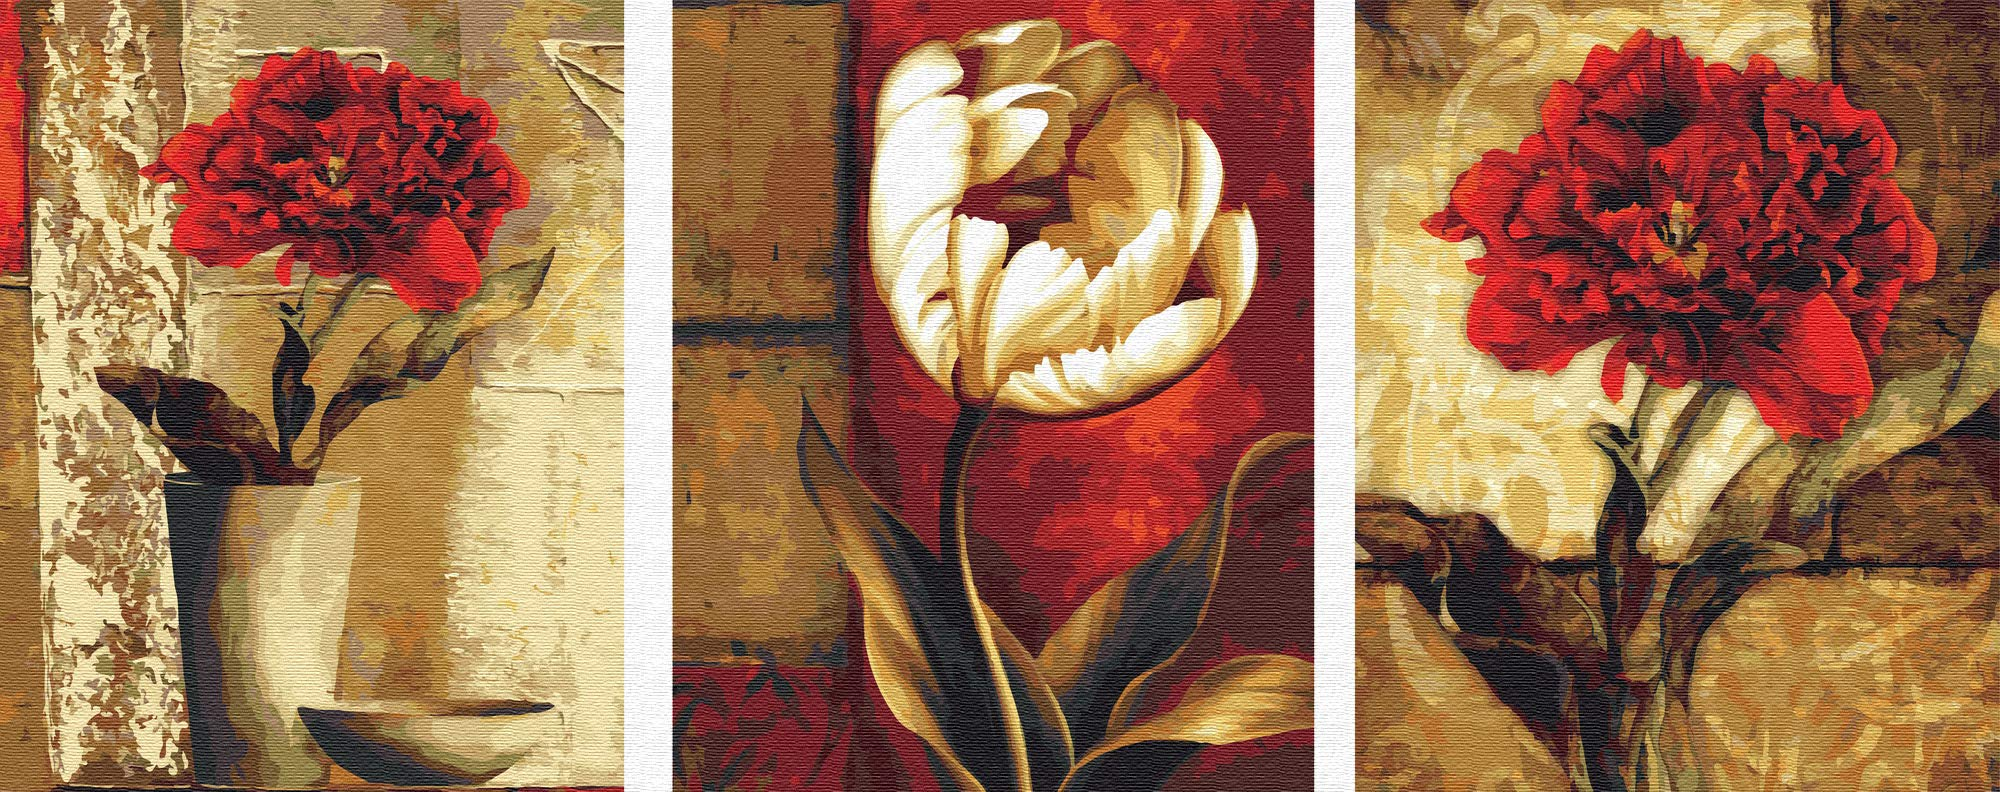 YXQSED Pack of 3 [Wooden Framed] DIY Oil Painting Paint by Number Kit for Adults Kids Students Beginner Canvas with Brushes and Acrylic Pigment -Retro Flowers 16x20 inch